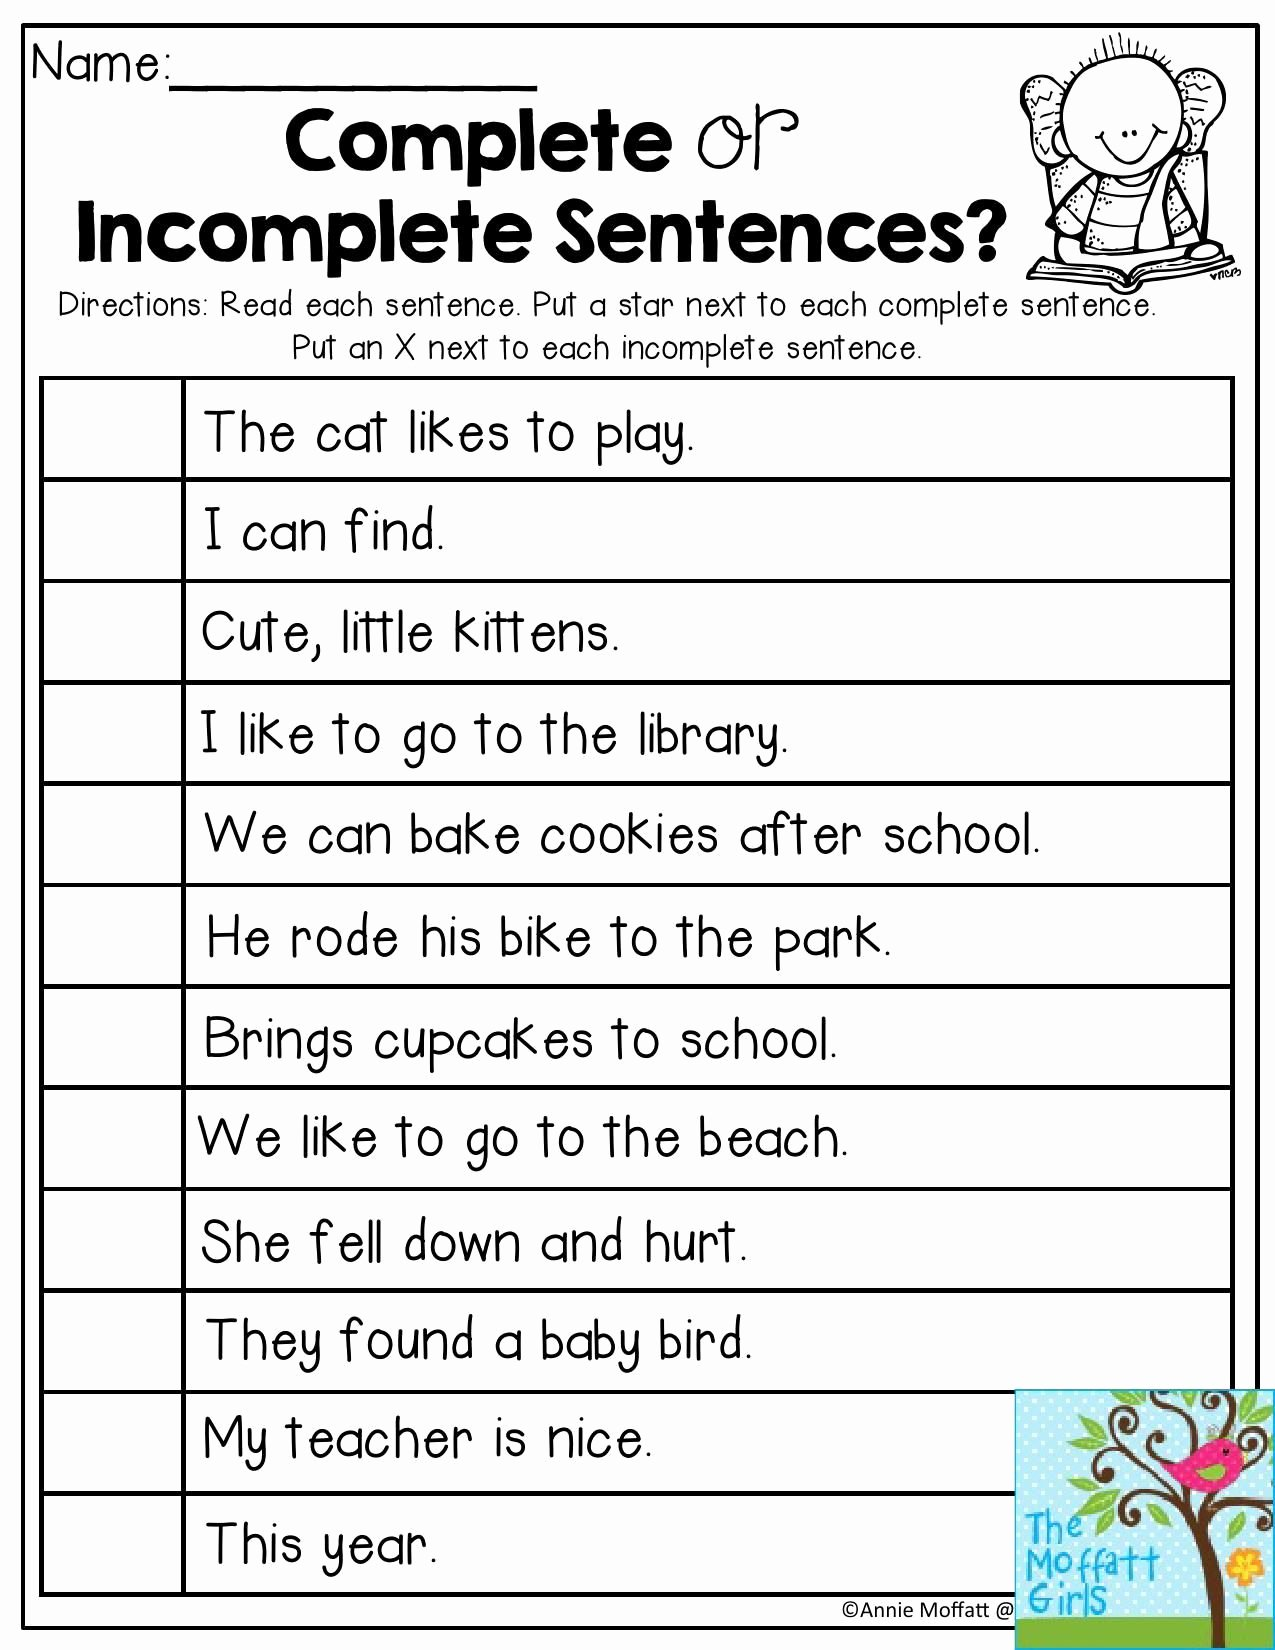 Complete Sentences Worksheets 2nd Grade Free Plete or In Plete Sentences Read Each Sentence and